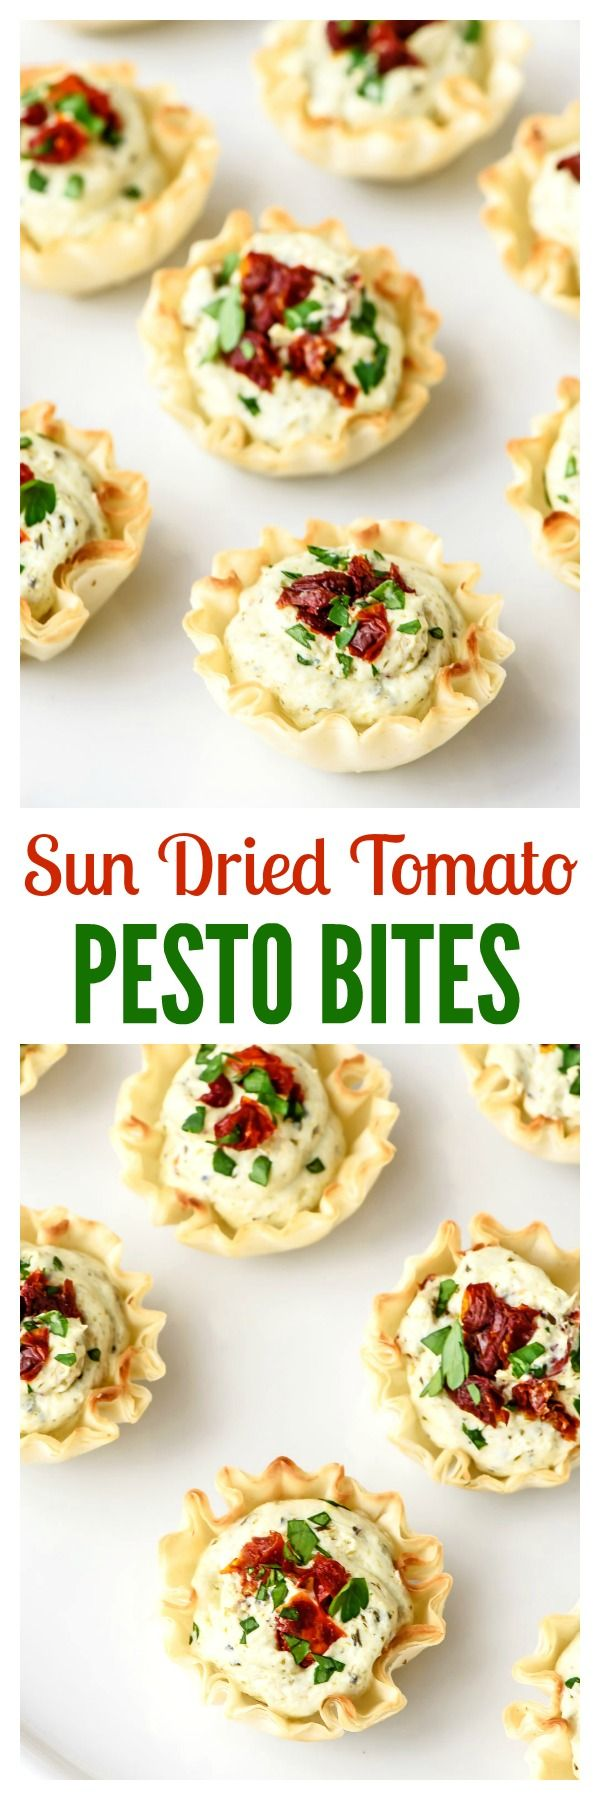 Skinny Sun Dried Tomato Pesto Bites are the perfect Christmas appetizer! Flakey phyllo dough with cream cheese pesto filling. Quick and easy to make, everyone loves them, and they are even red and green.